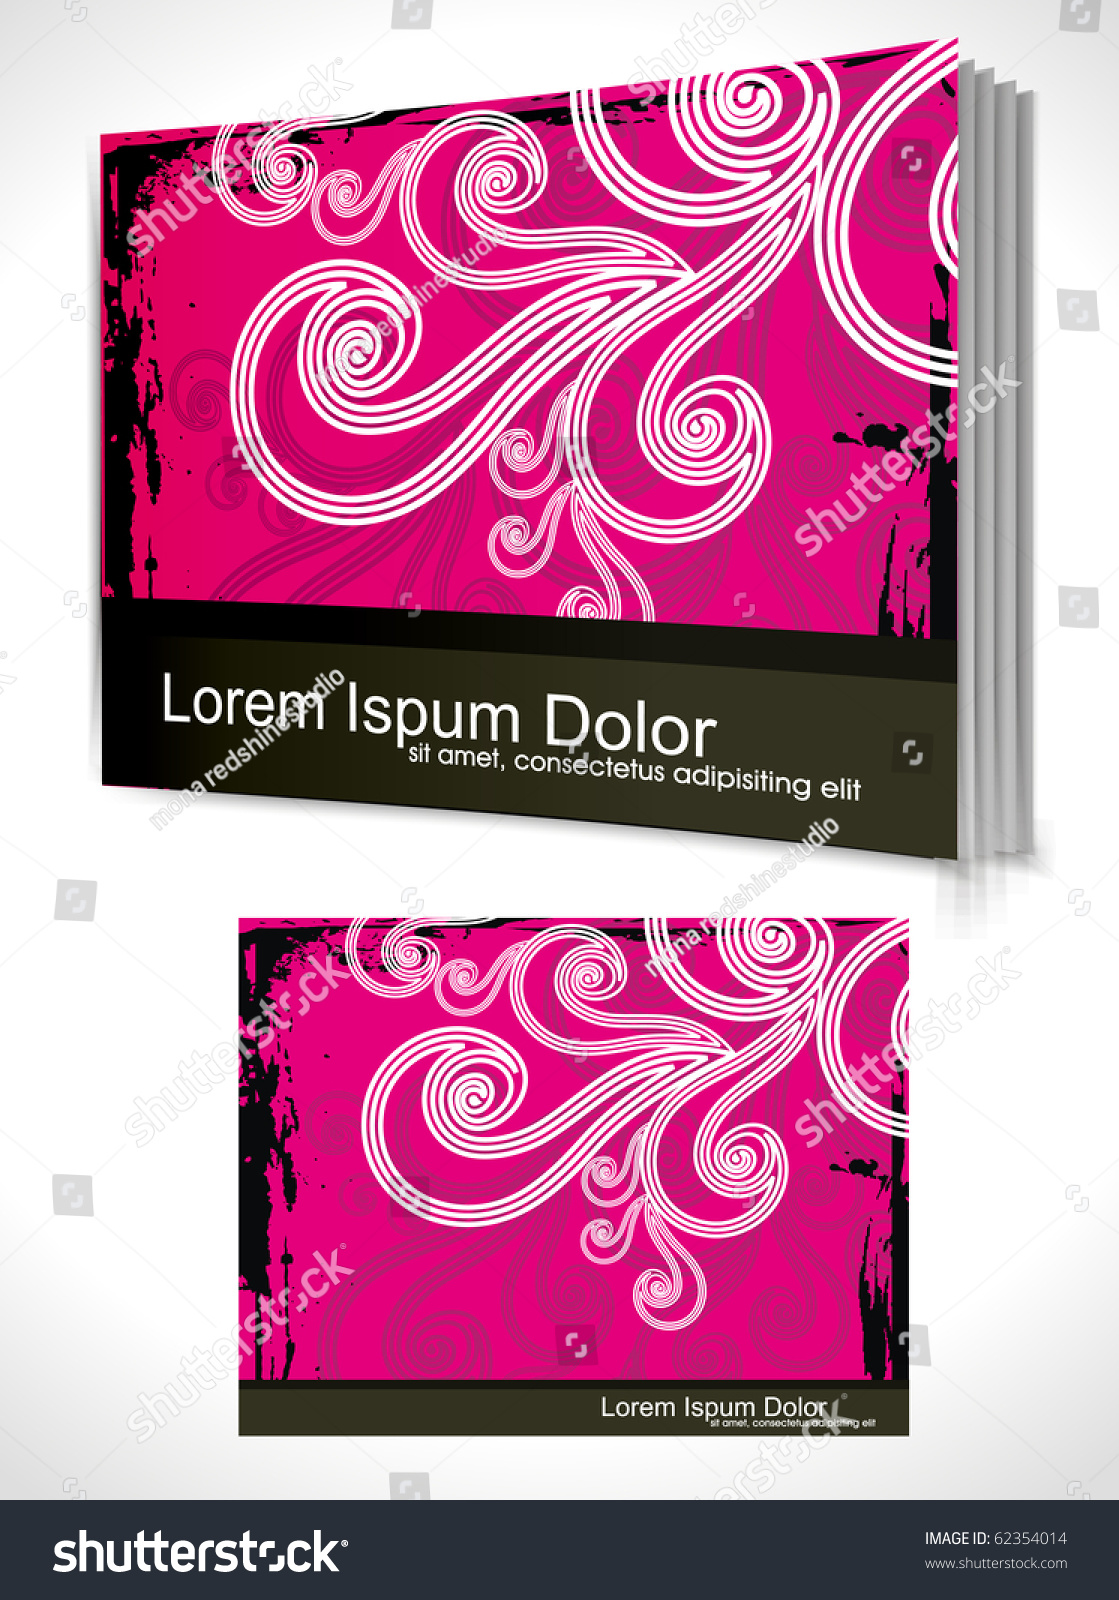 Book Cover Design Illustrator : Book cover design template vector illustration